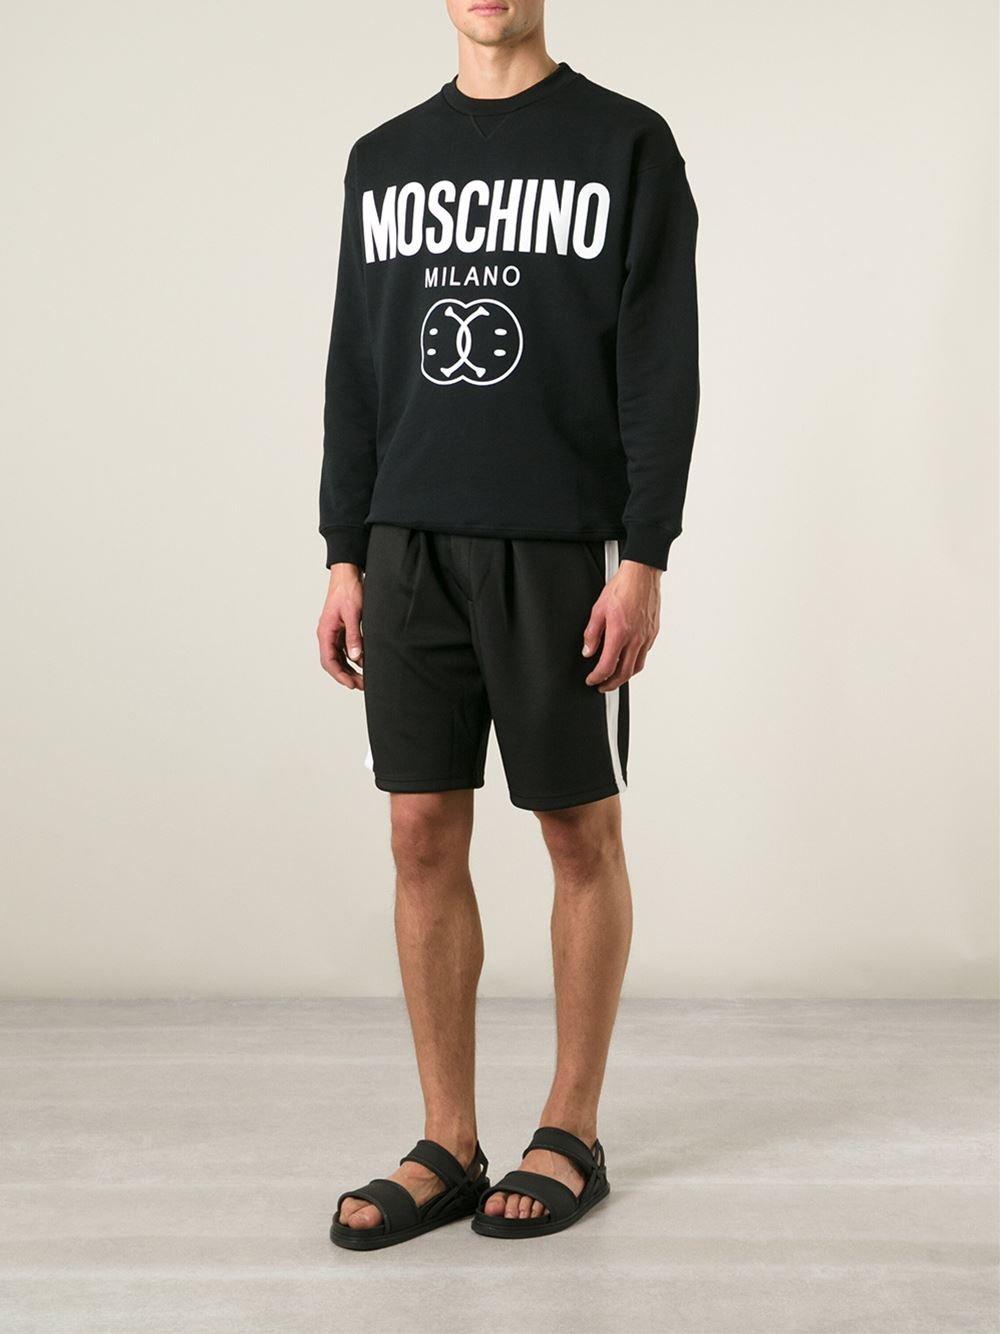 Moschino Smiley And Logo Print Sweatshirt in Black for Men